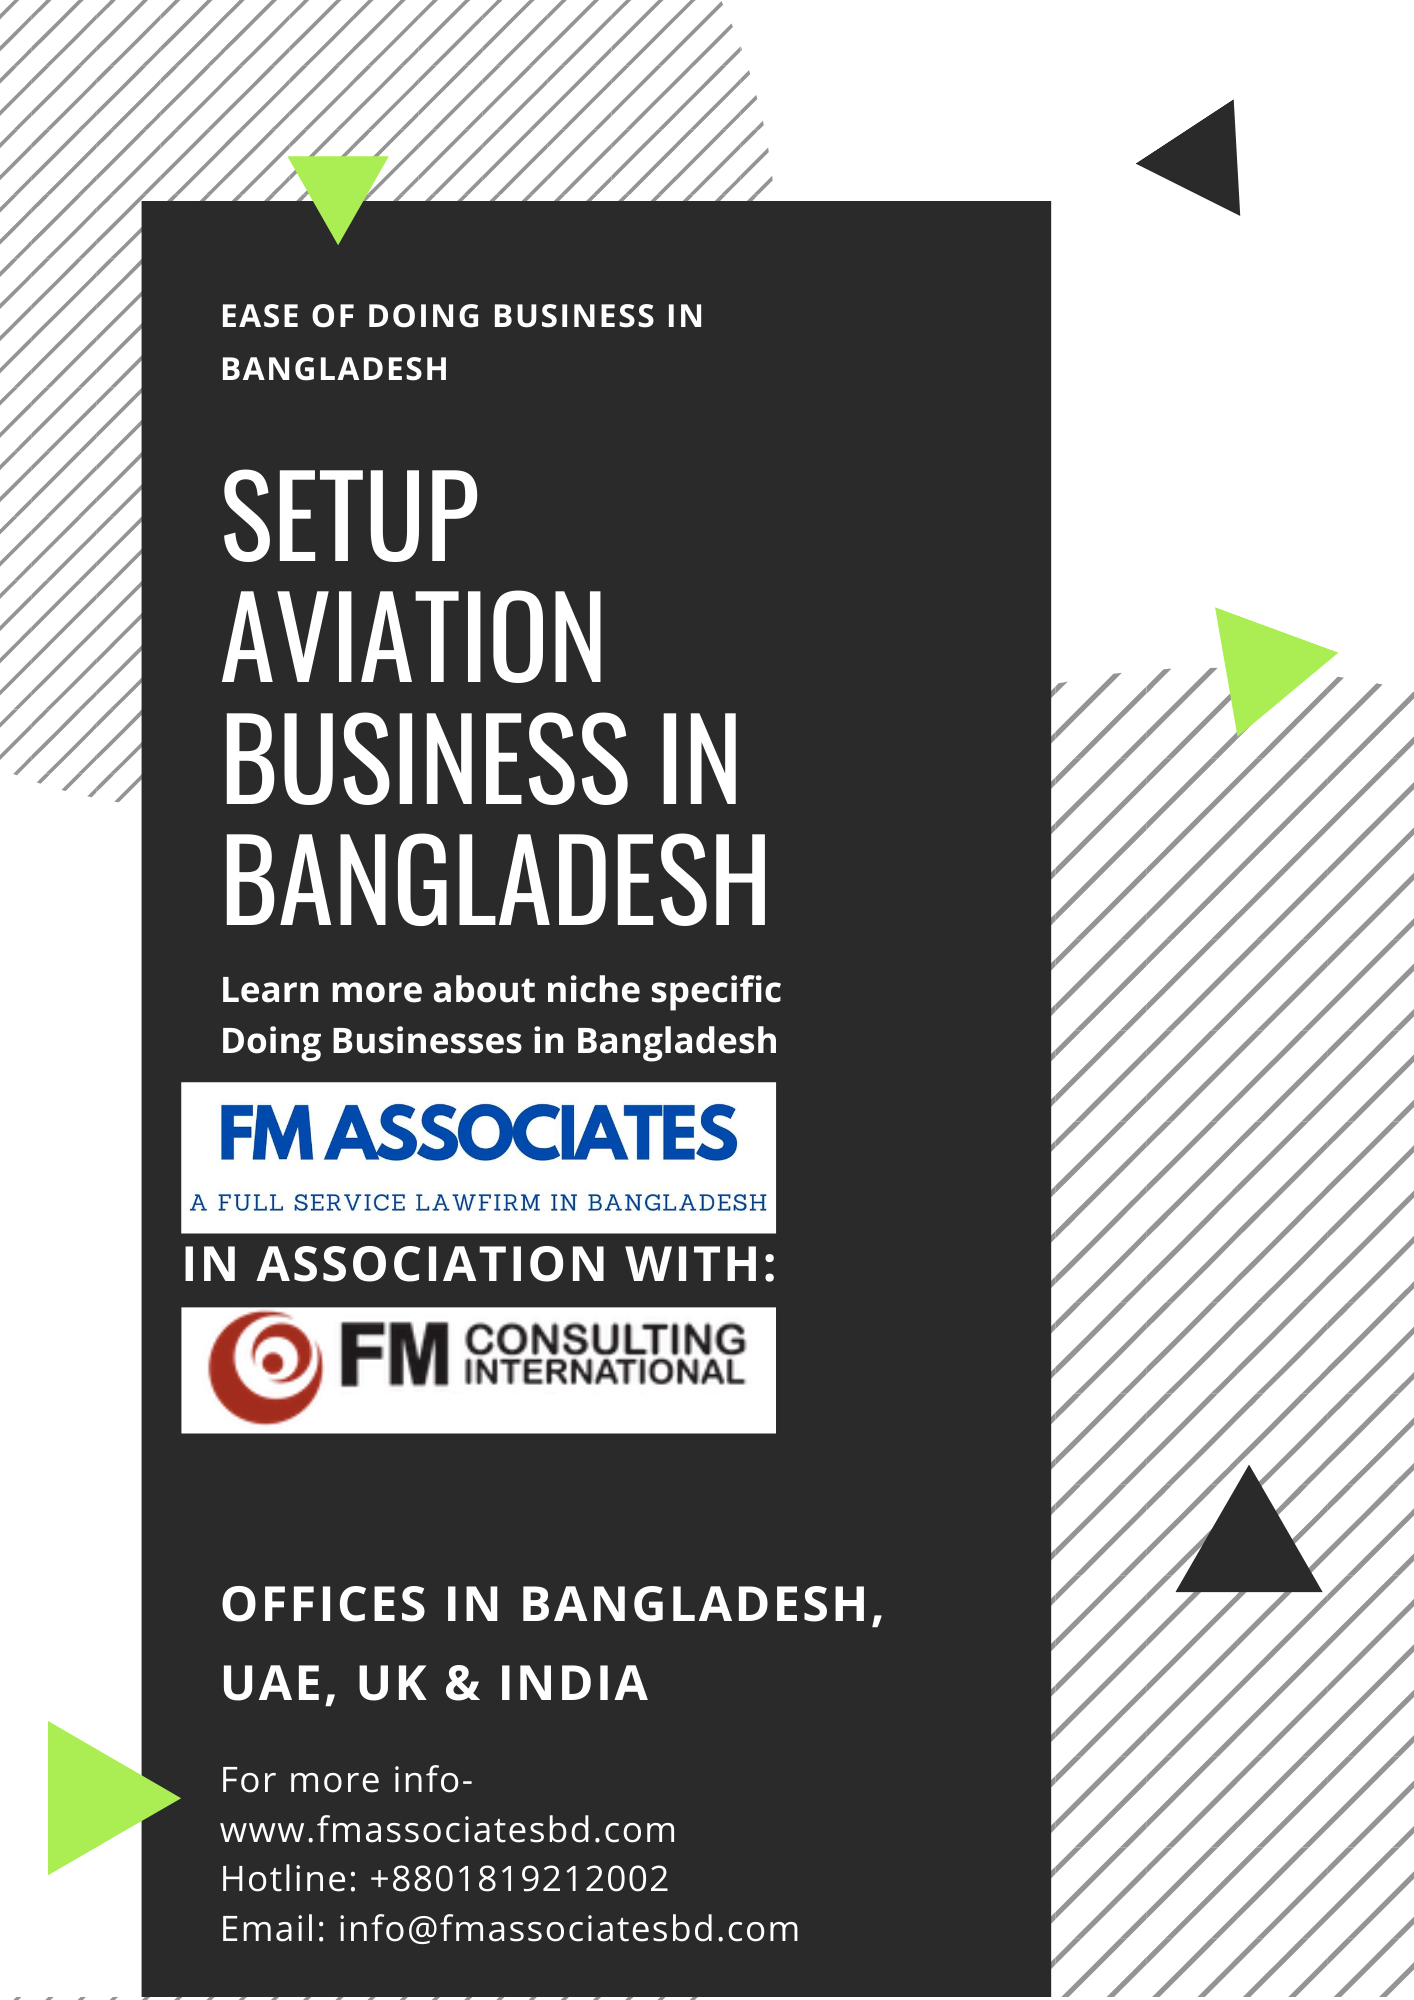 How to Setup Aviation Business in Bangladesh